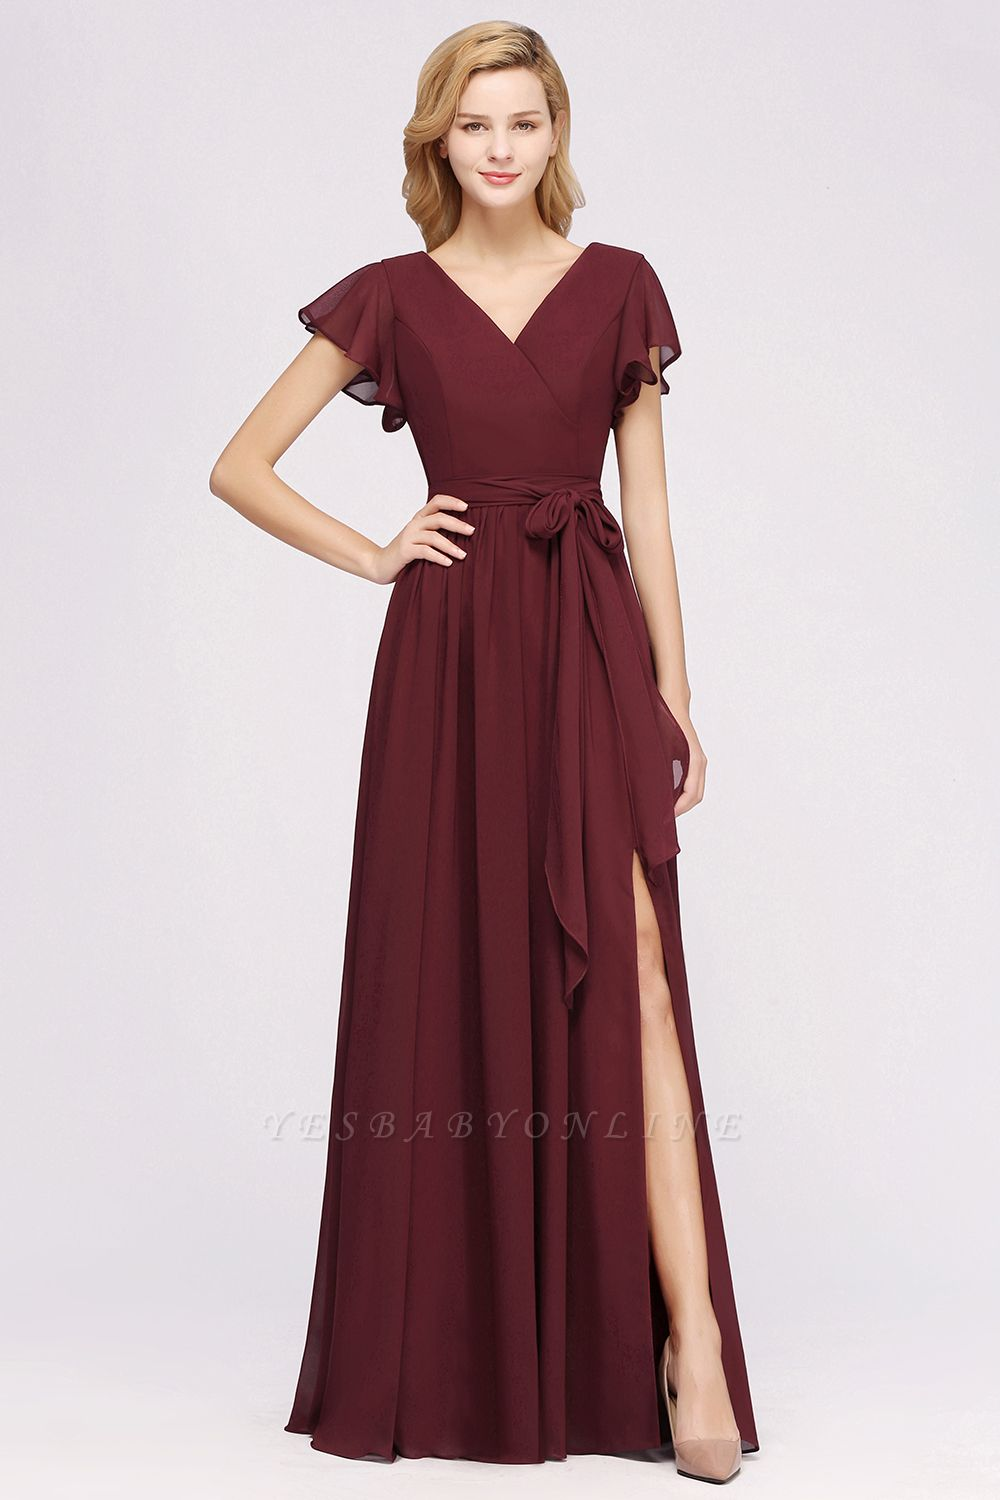 elegant A-line  V-Neck Short-Sleeves Floor-Length Bridesmaid Dresses with Bow Sash